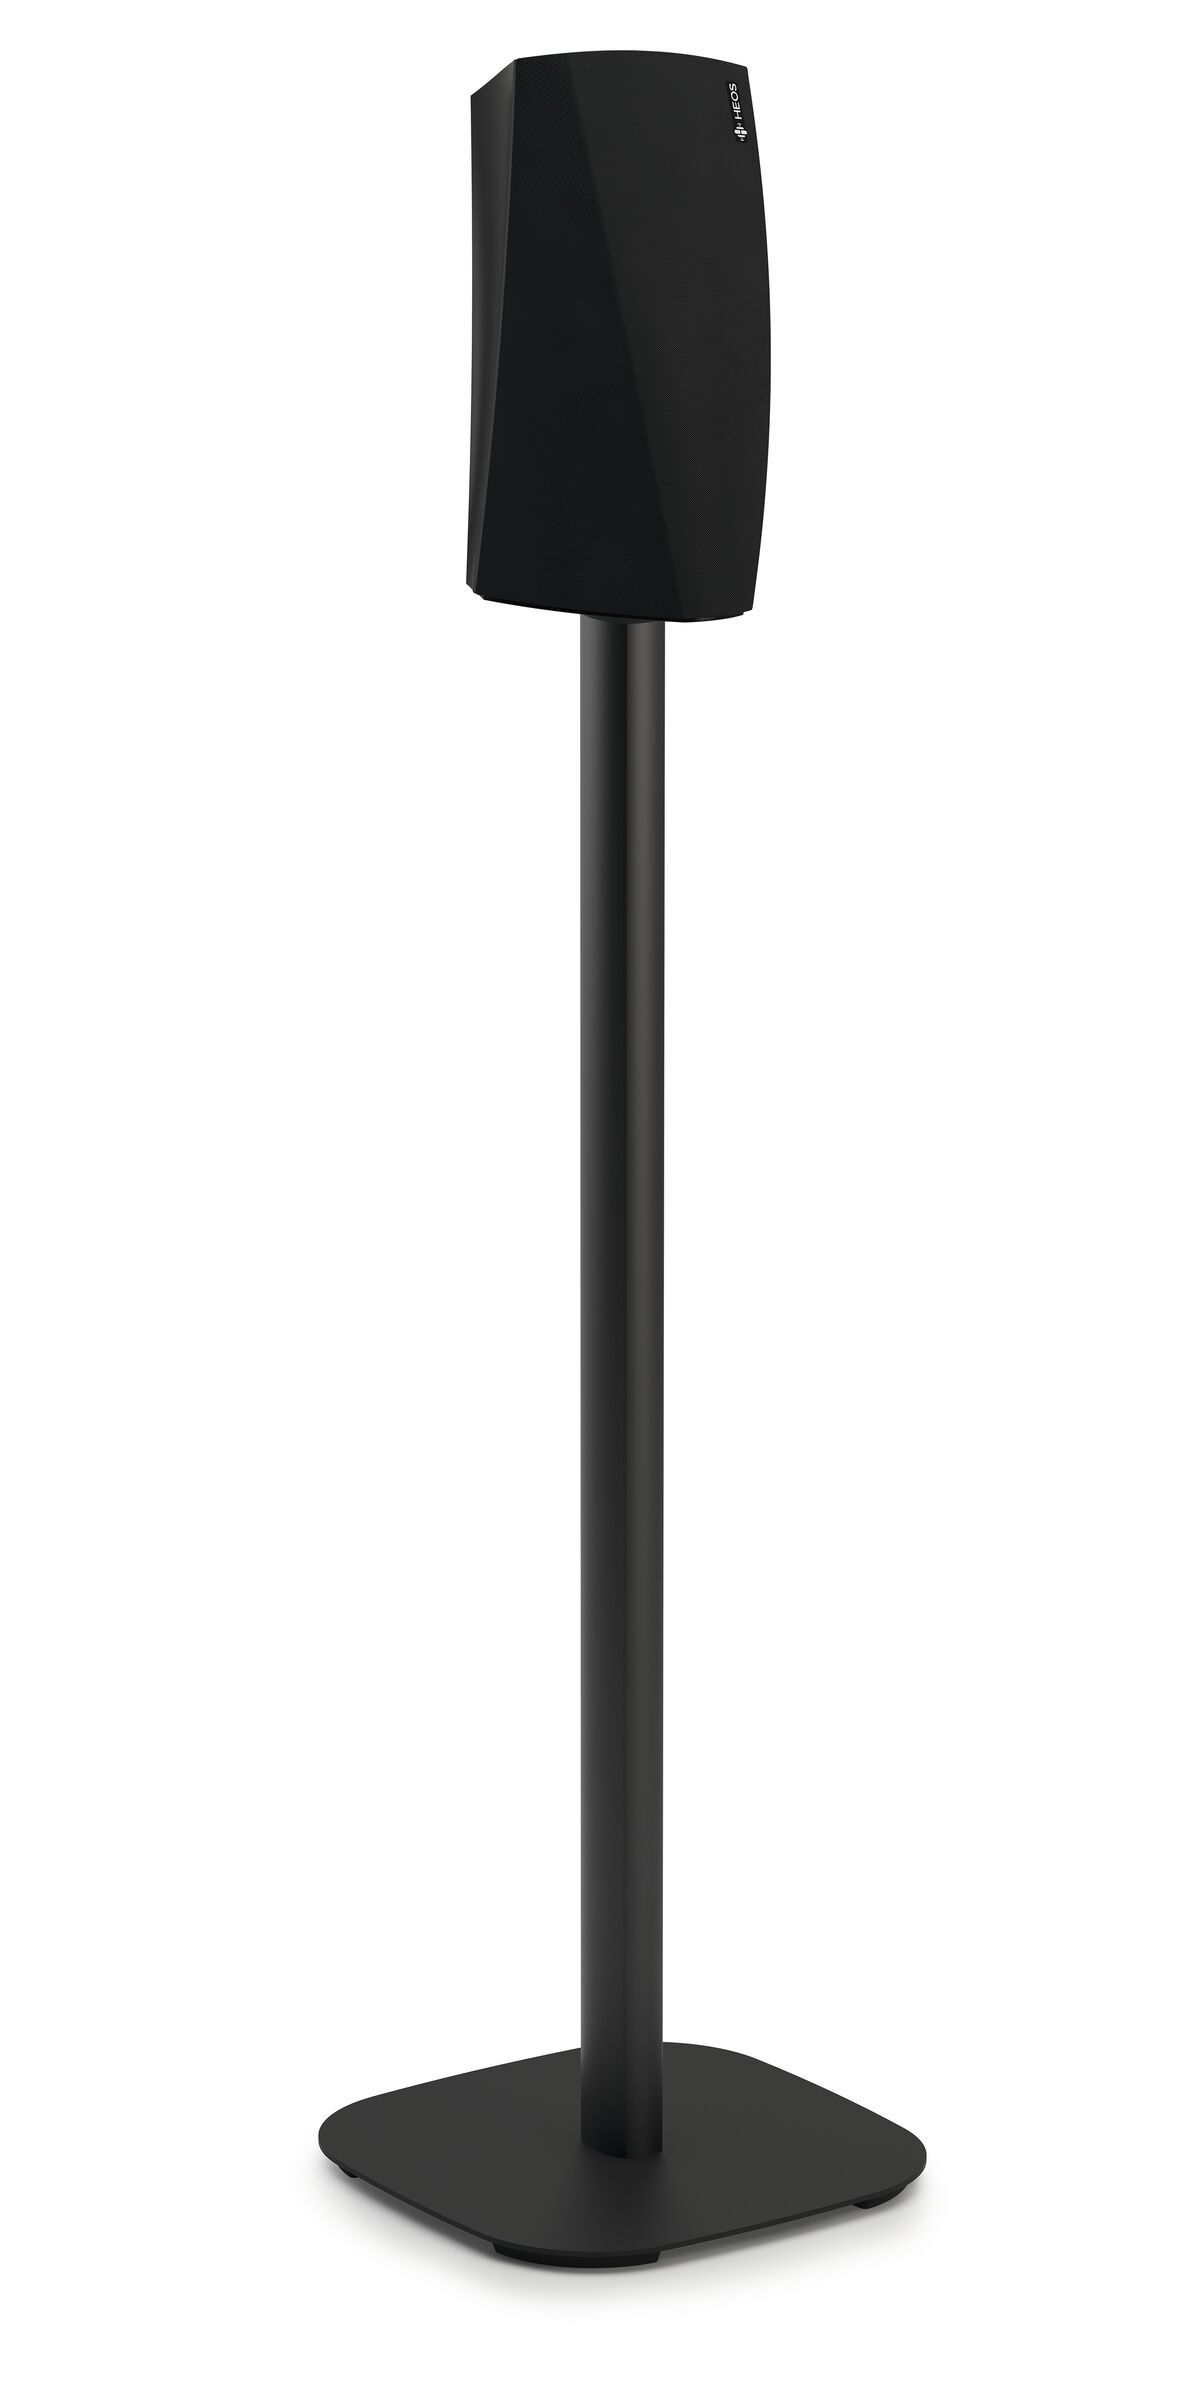 Vogel's SOUND 5313 Stand per casse Denon HEOS 1 / HEOS 3 (nero) - Application